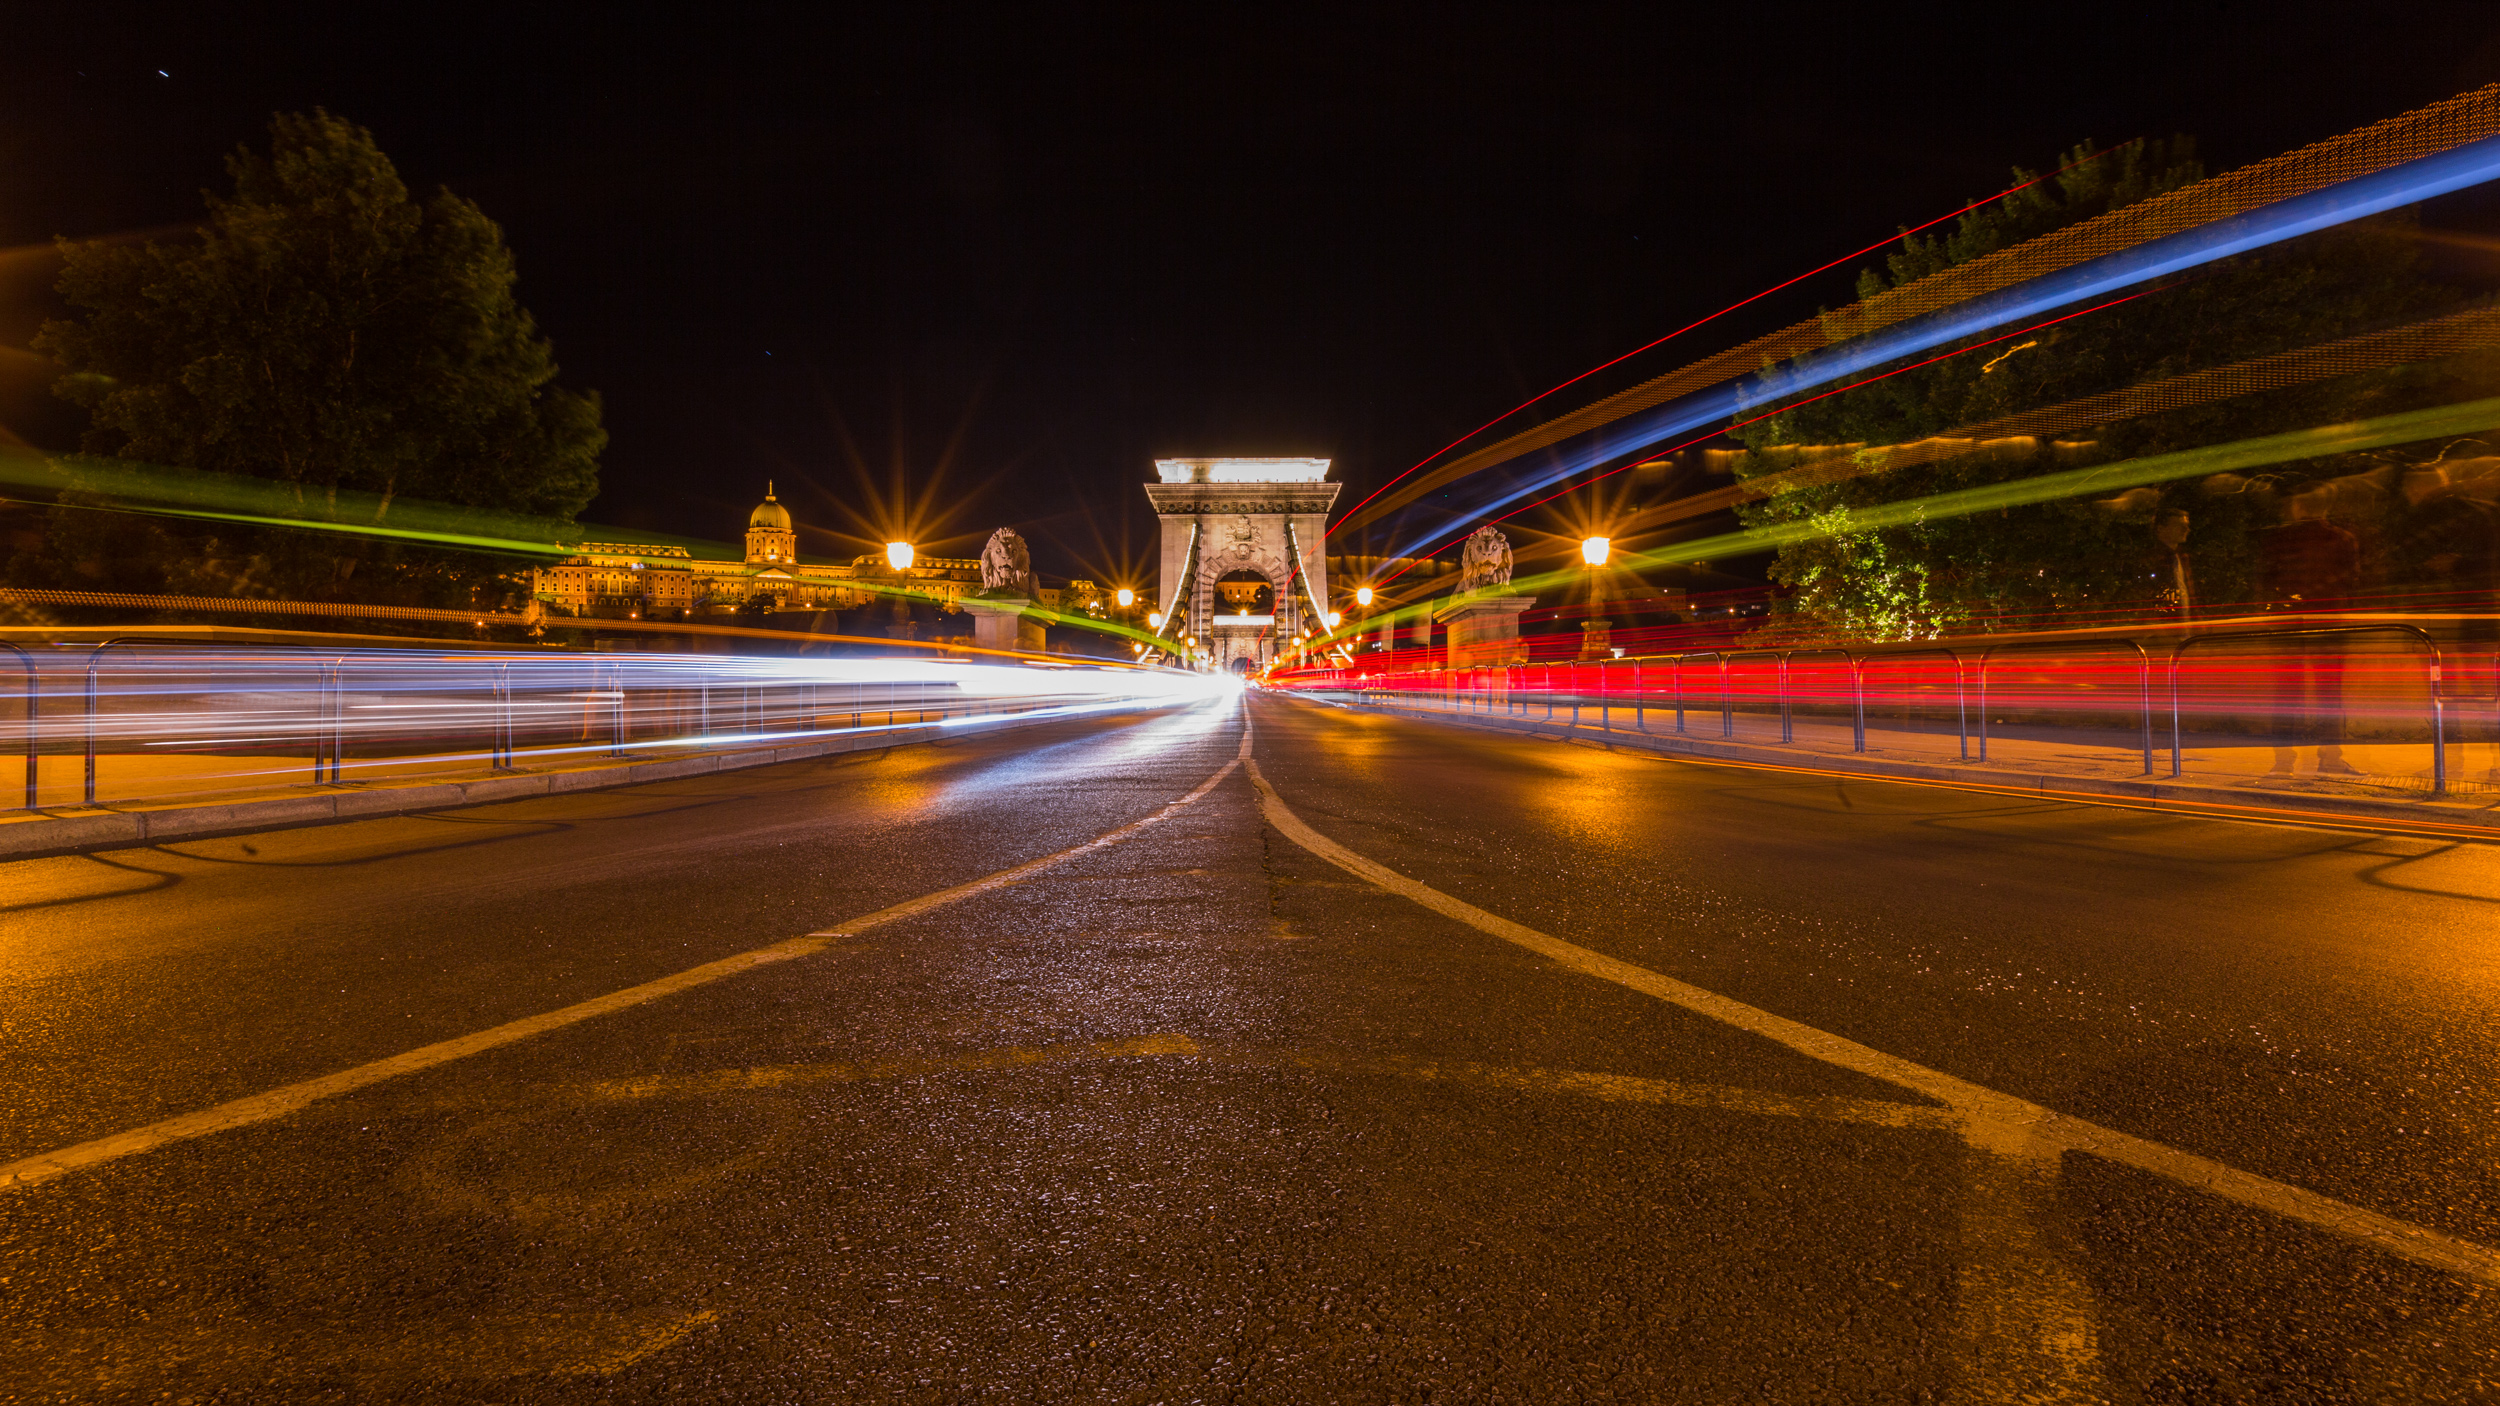 Chain Bridge and light trail. ISO100, 20mm, f/18, 46sec